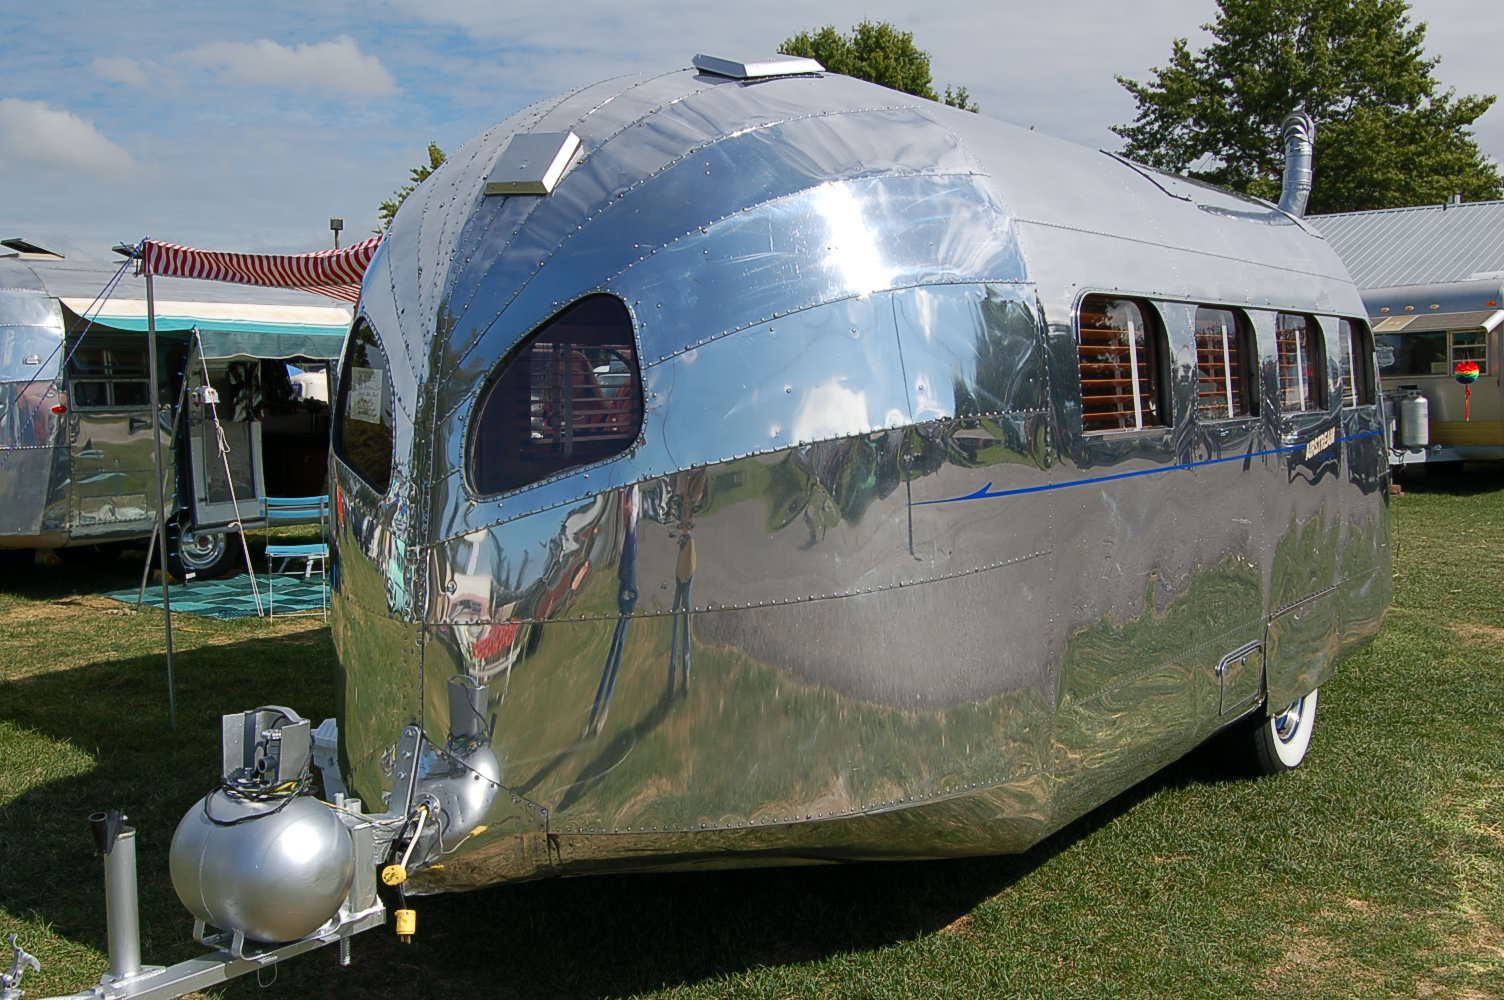 Click image for larger version  Name:1936-airstream-clipper-trailer702.jpg Views:135 Size:681.6 KB ID:140283